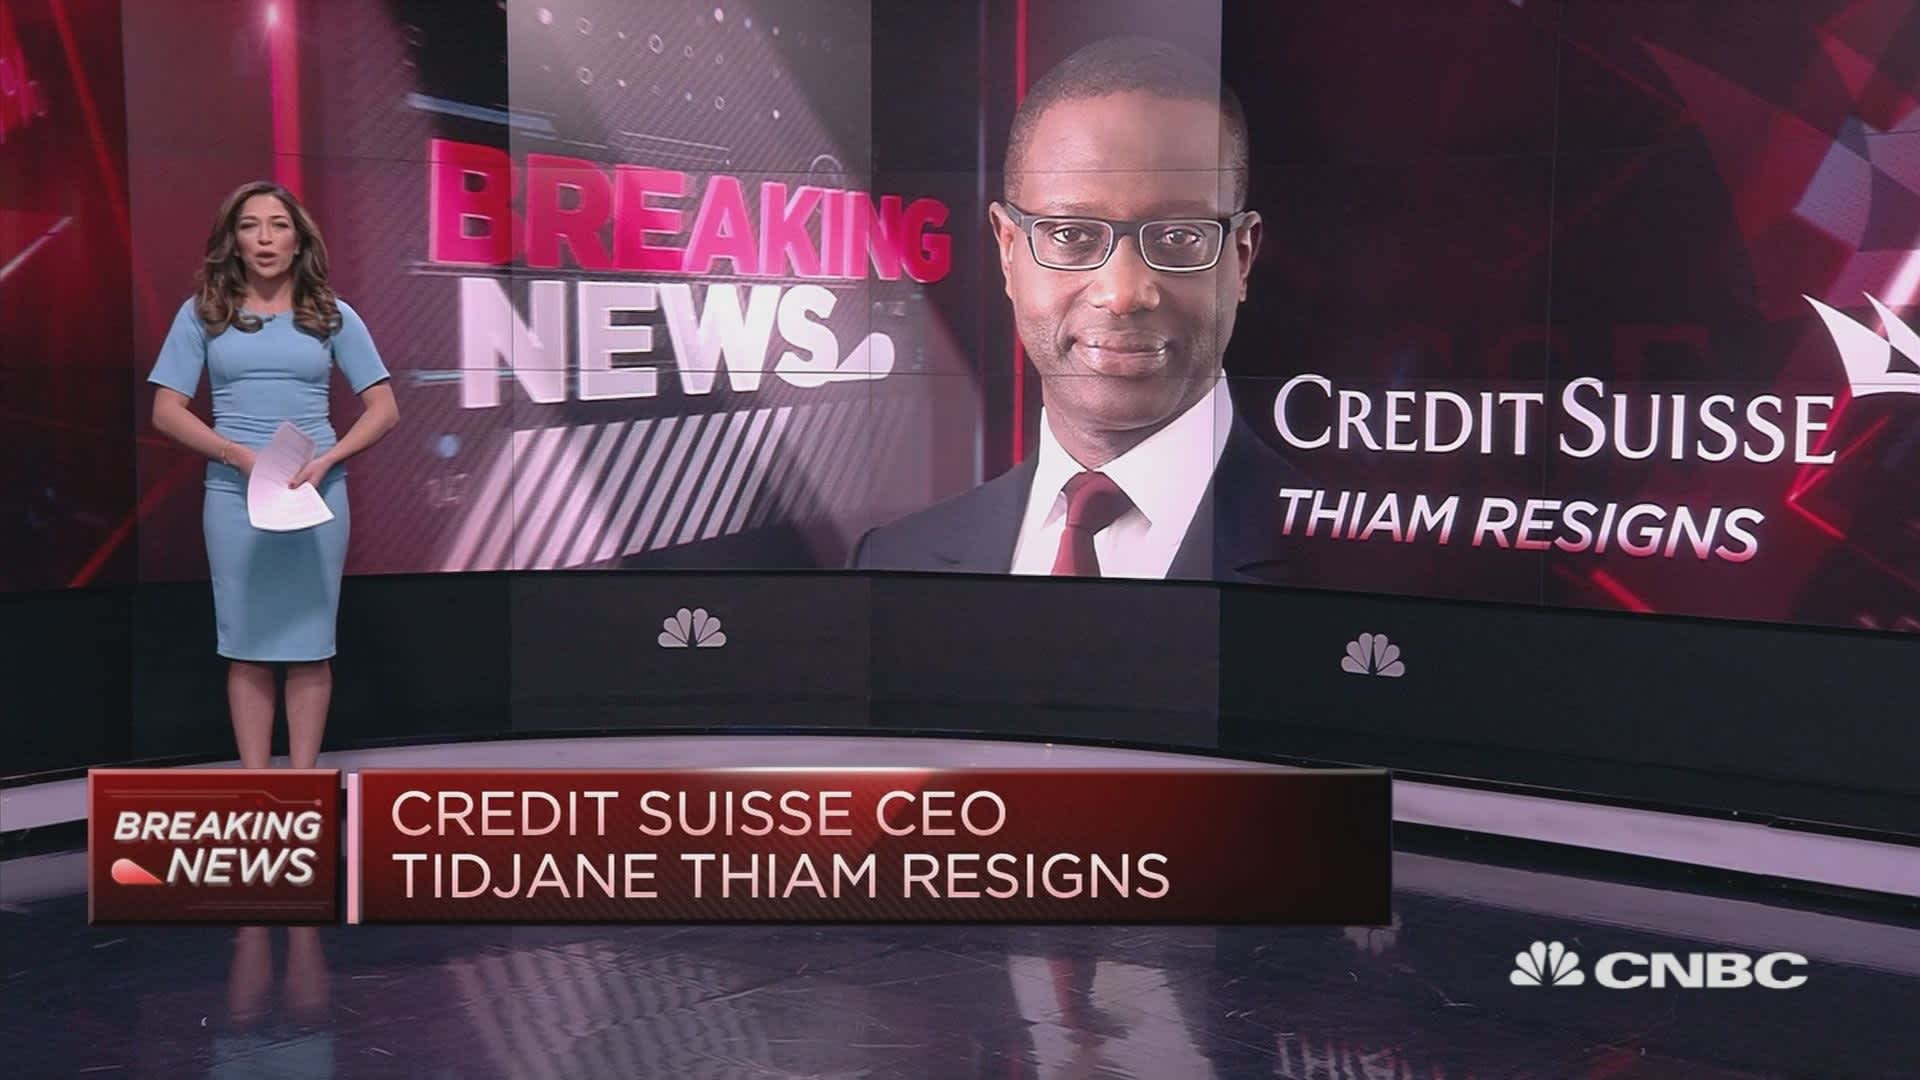 Credit Suisse Ceo Tidjane Thiam Quits After Spying Scandal